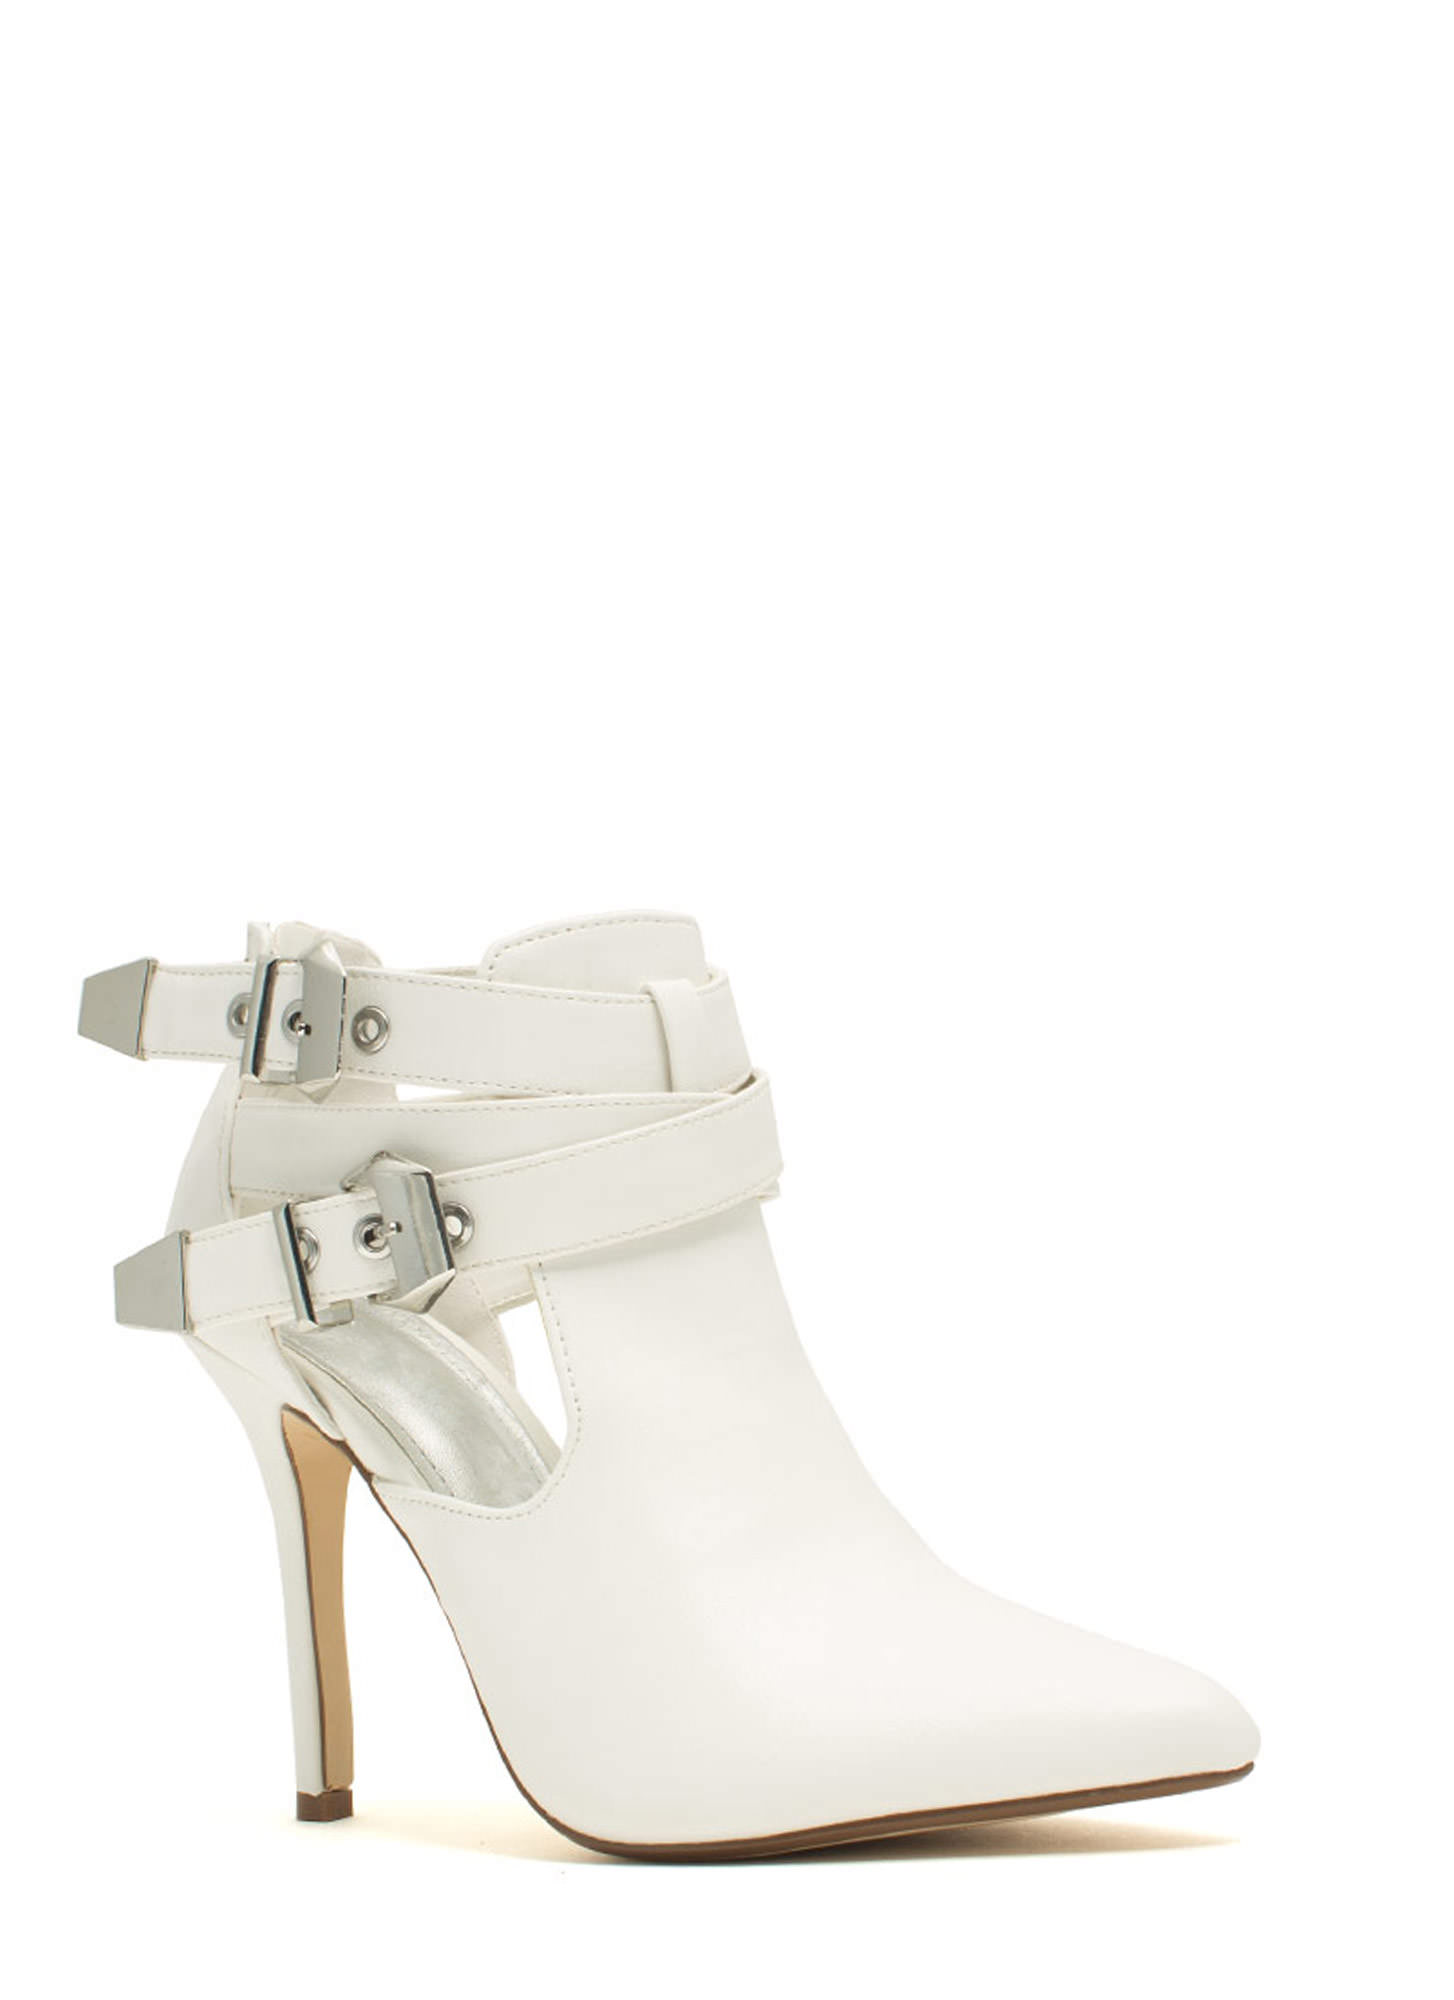 Edgy Girl Faux Leather Stiletto Booties WHITE(Final Sale)